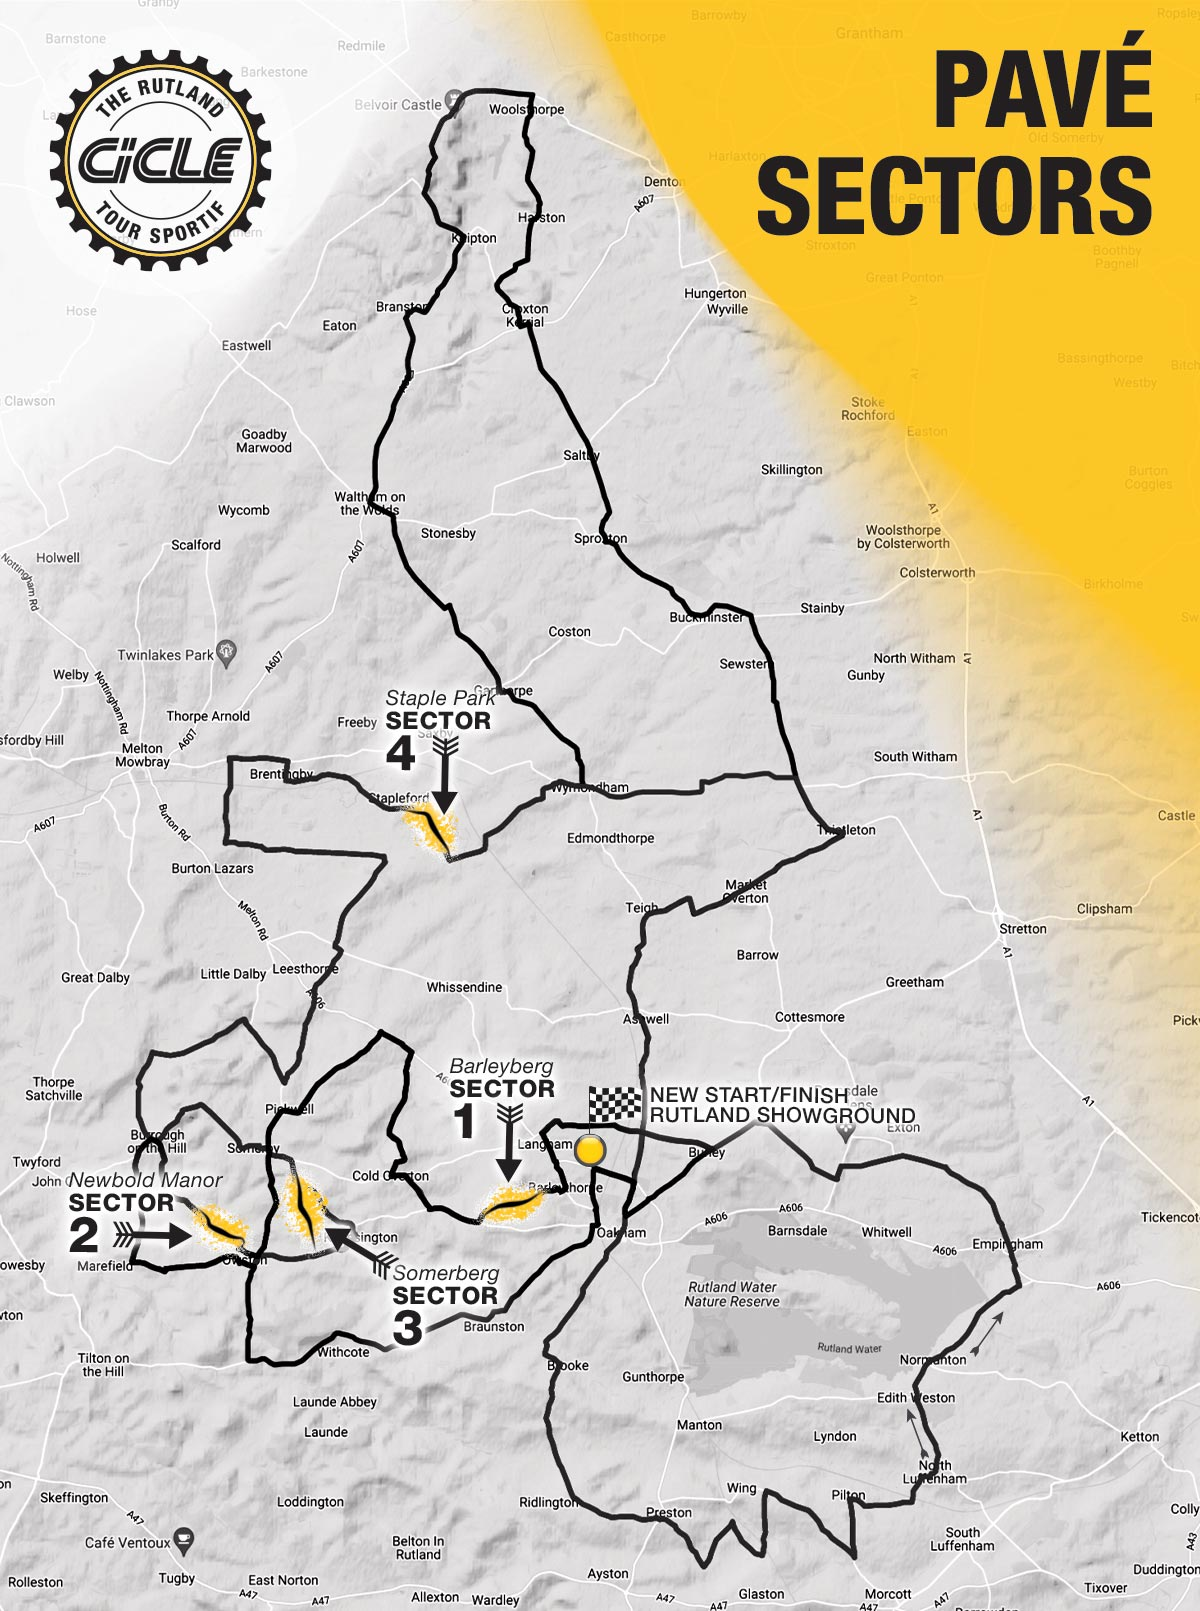 Cicle Tour Sportive pave sector map